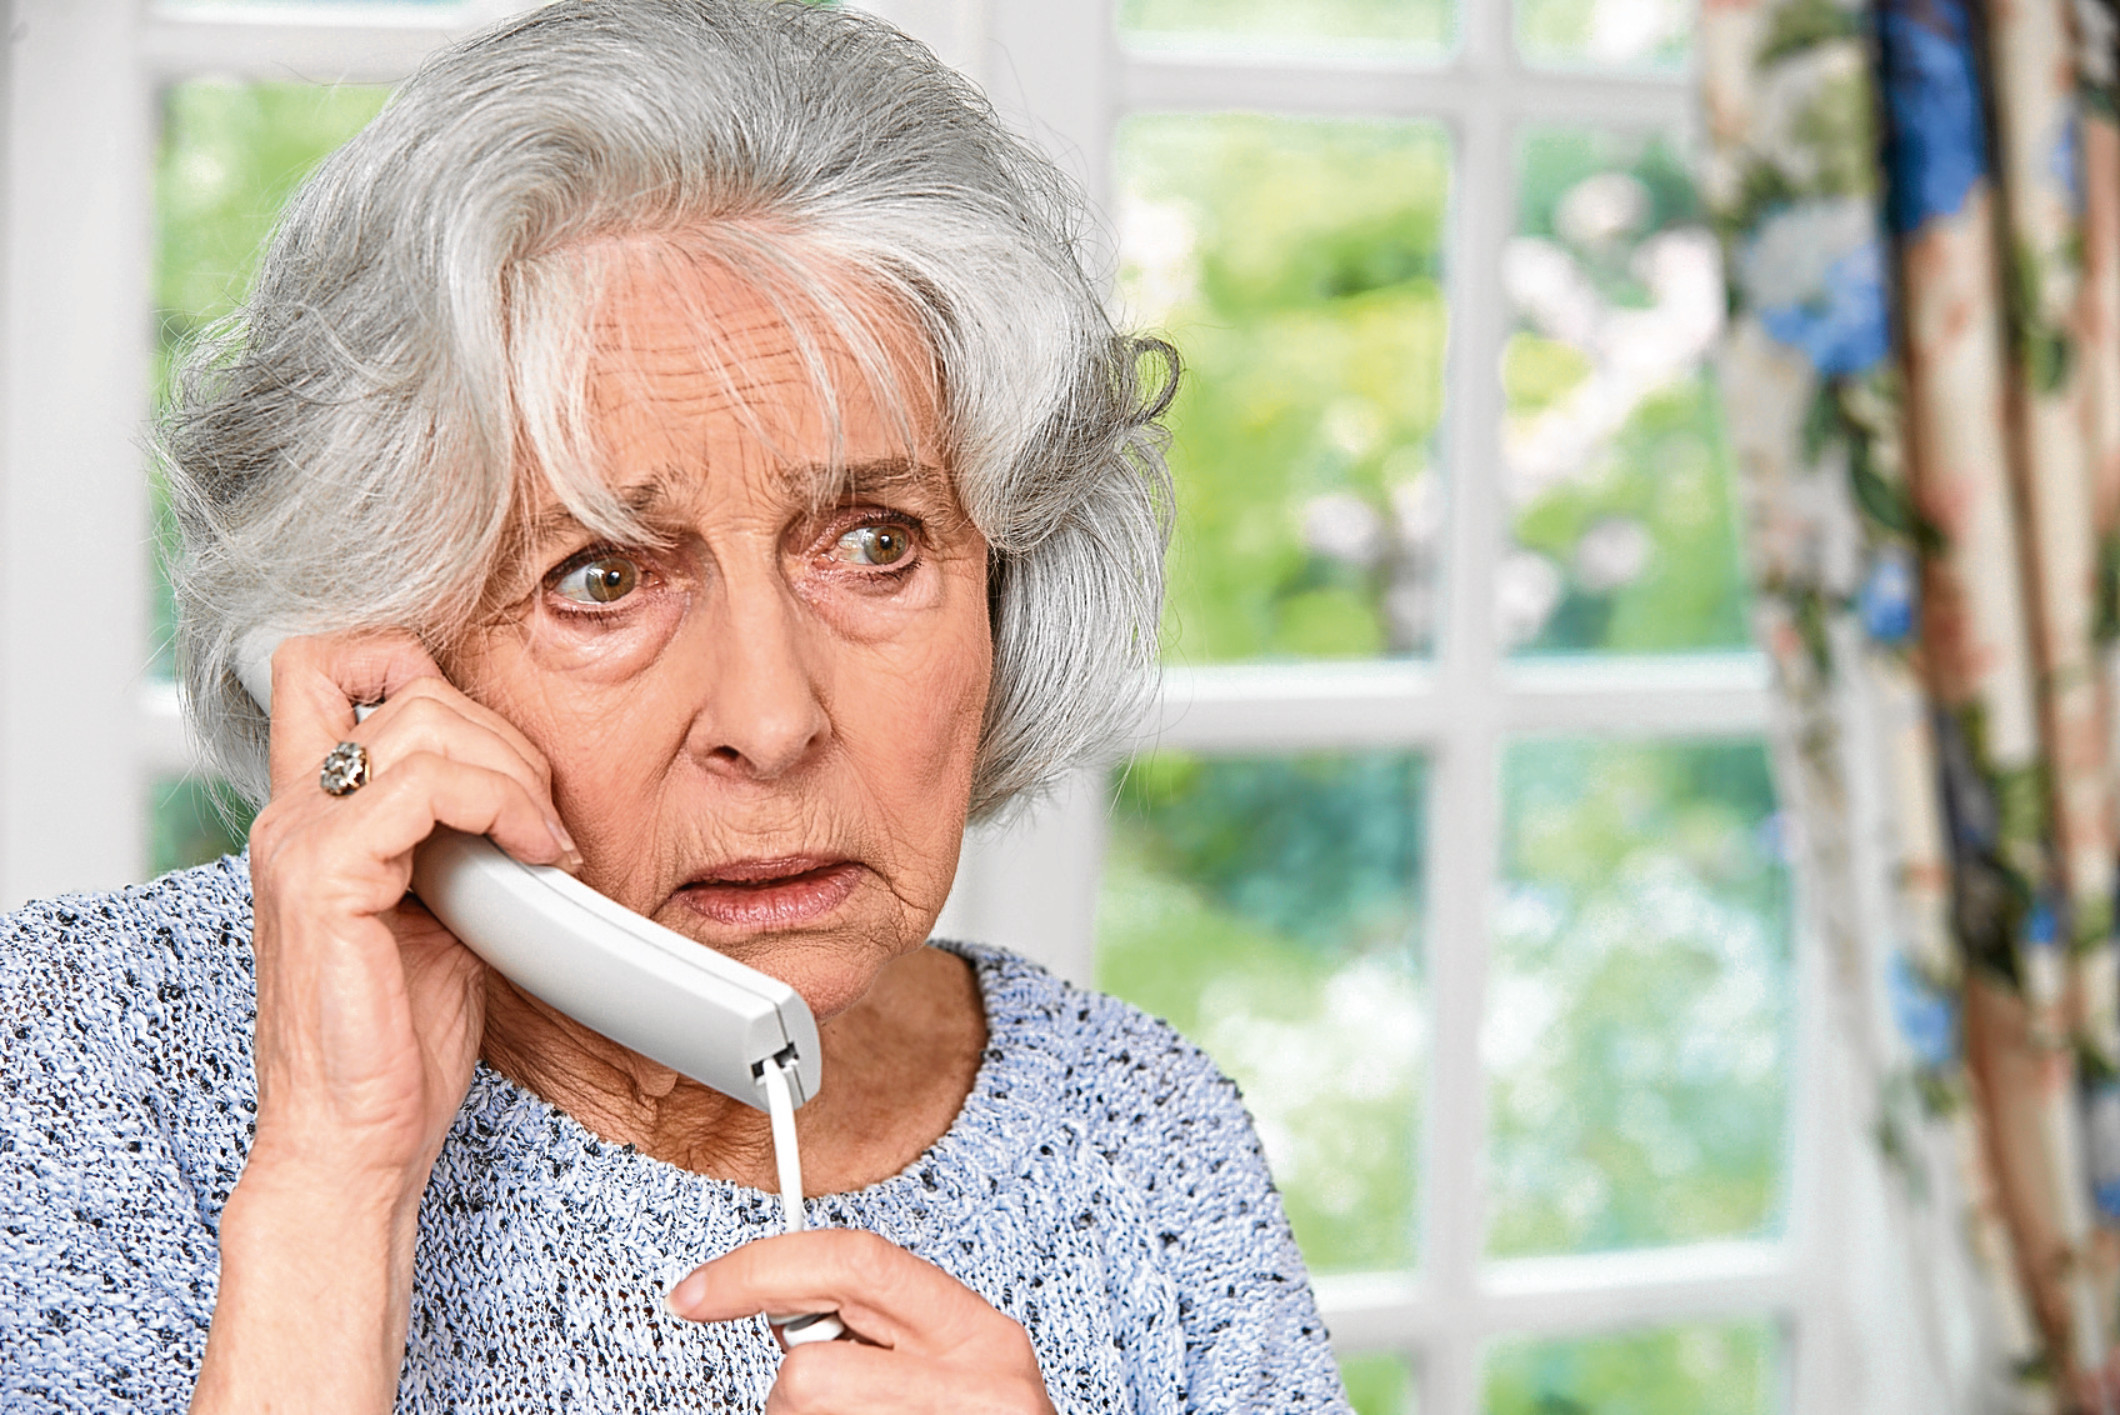 Continuous calls about accident compensation can be frustrating and intimidating